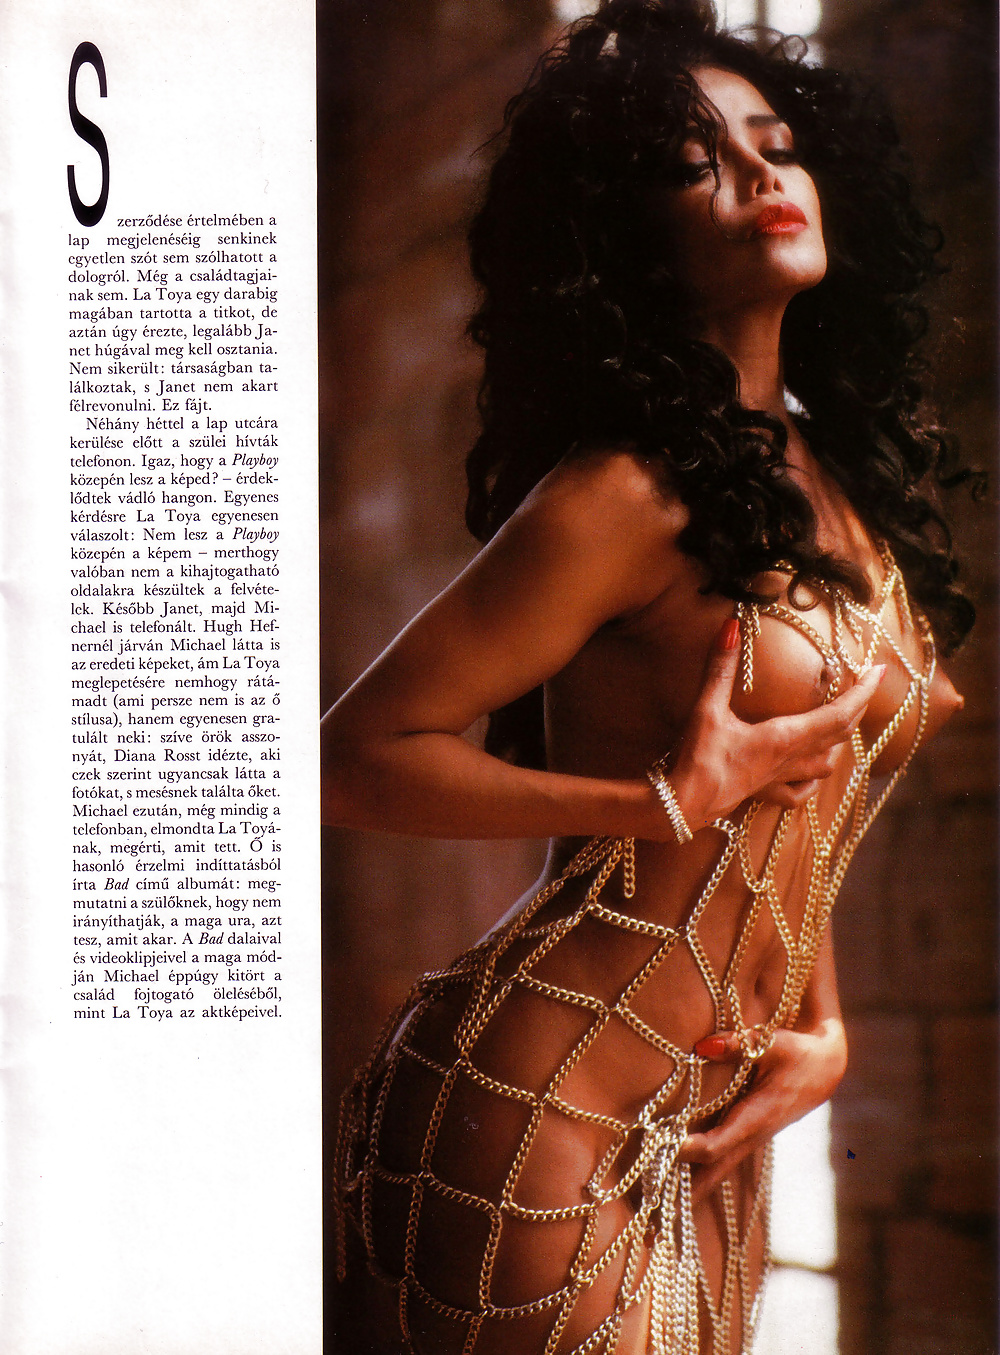 ass-picture-latoya-jackson-nude-playboy-magazine-young-butt-sophie